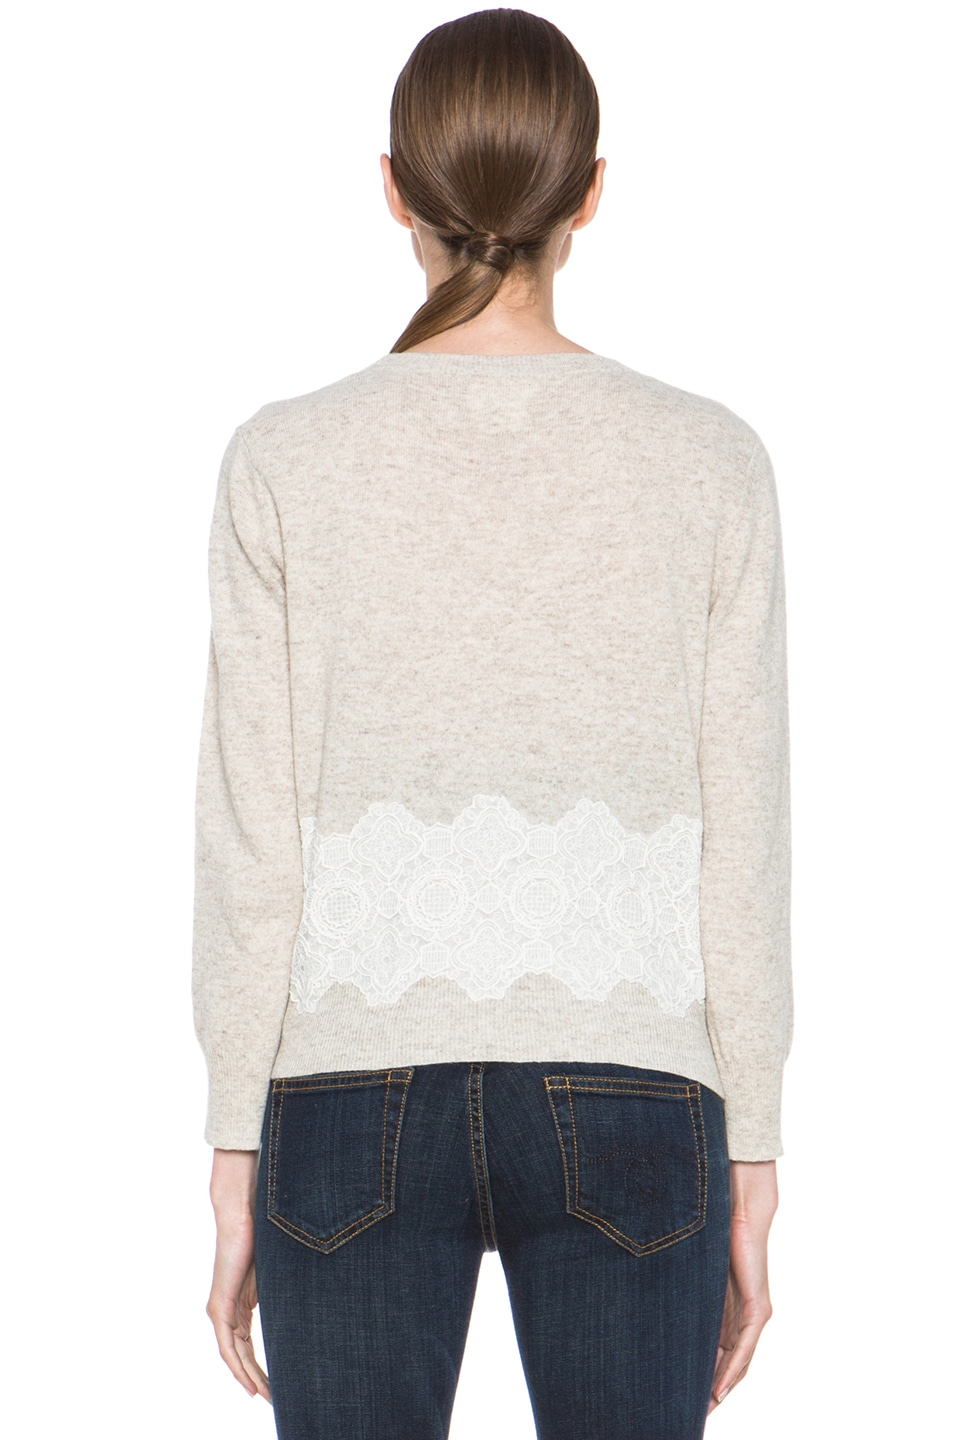 Image 4 of Girl. by Band of Outsiders Merino Wool Lace Pullover in Oatmeal